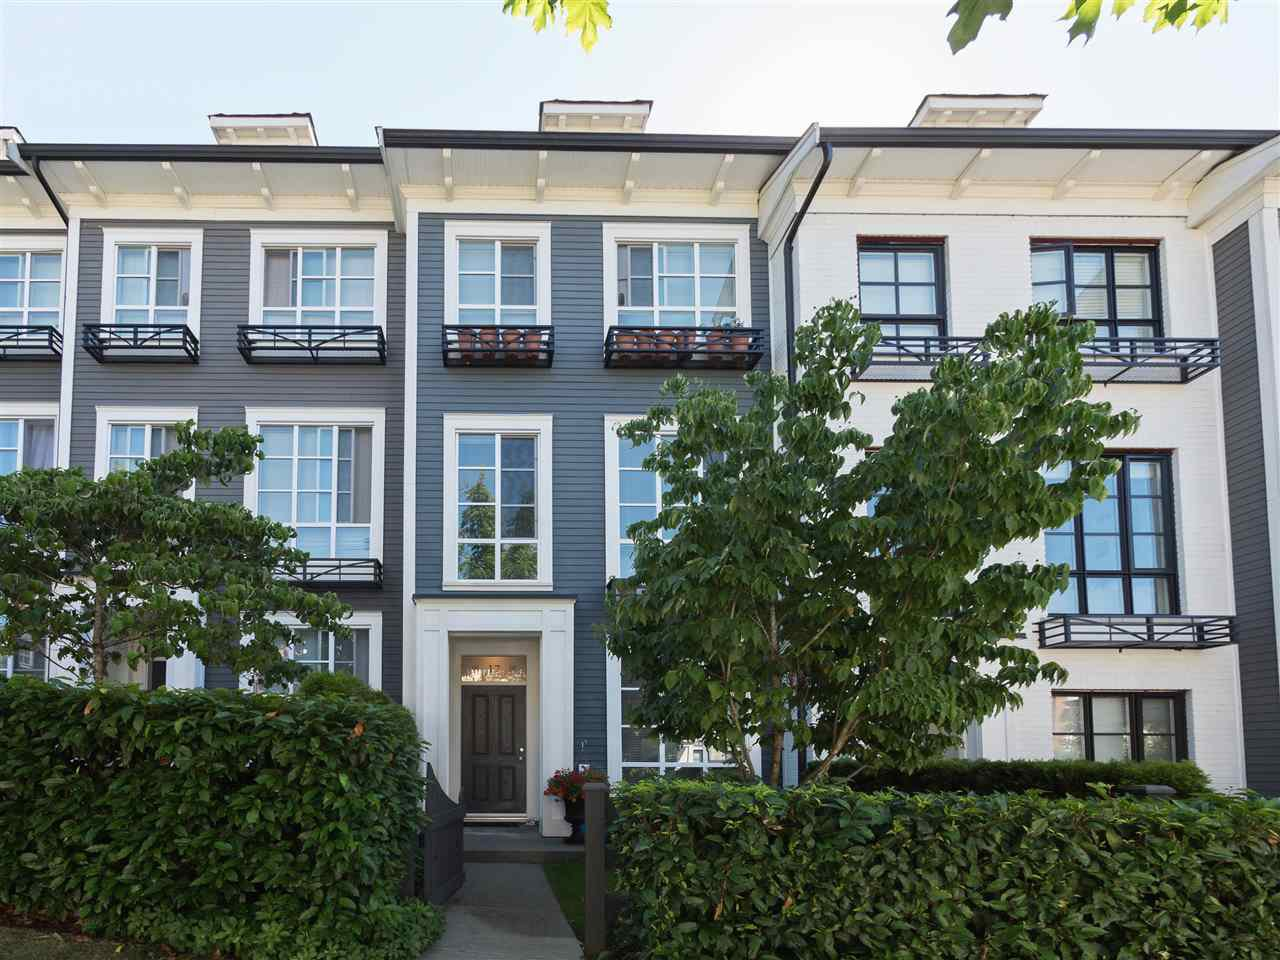 """Main Photo: 17 1245 HOLTBY Street in Coquitlam: Burke Mountain Townhouse for sale in """"TATTON EAST"""" : MLS®# R2193207"""